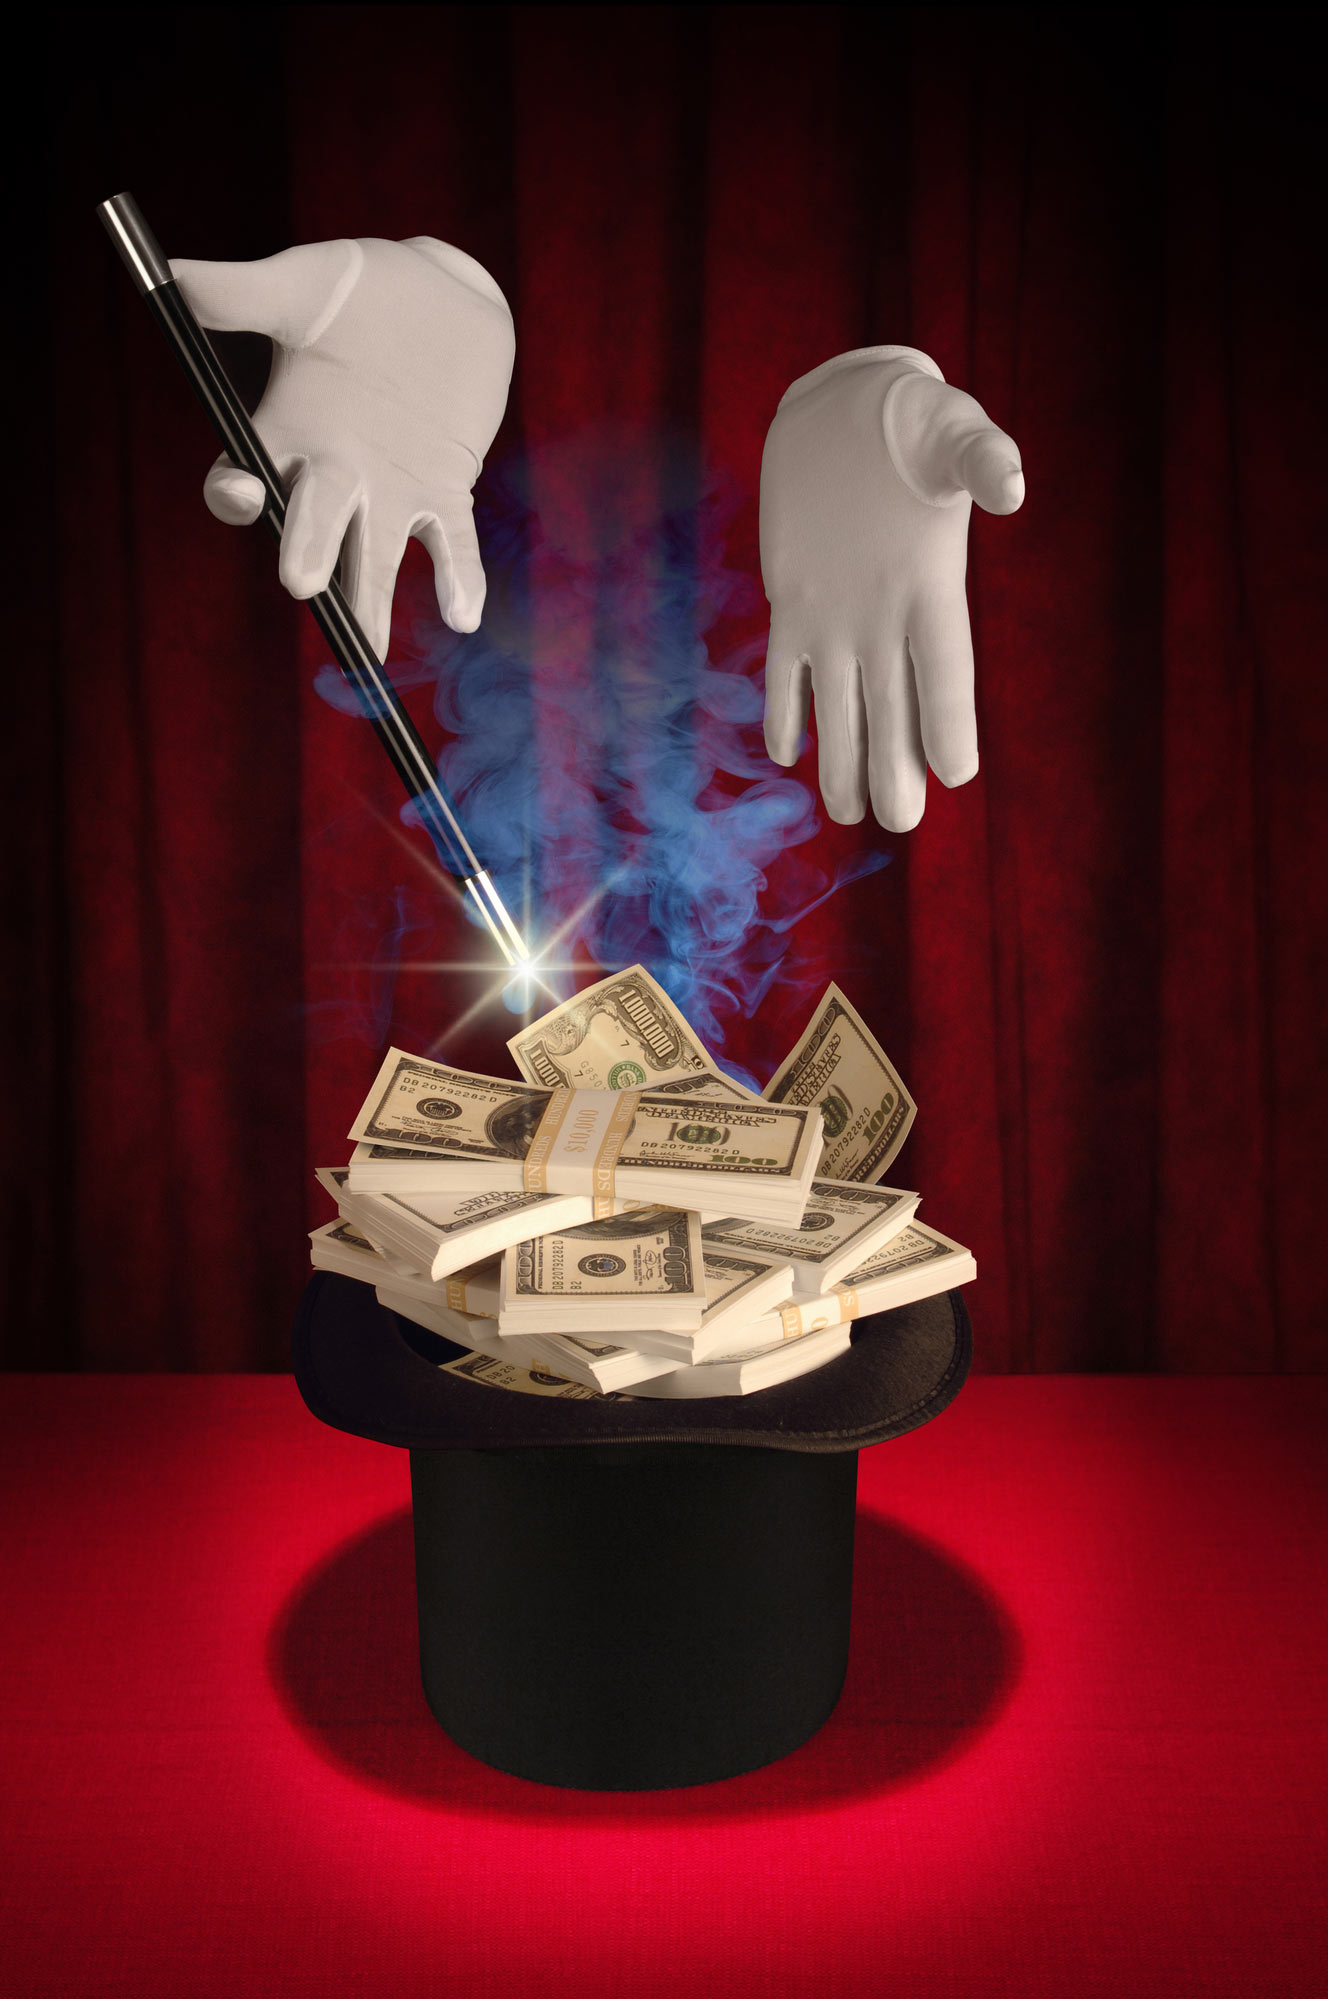 Smoke and mirrors magic trick that creates an illusion that stacks of money are appearing in the Magician's top hat.